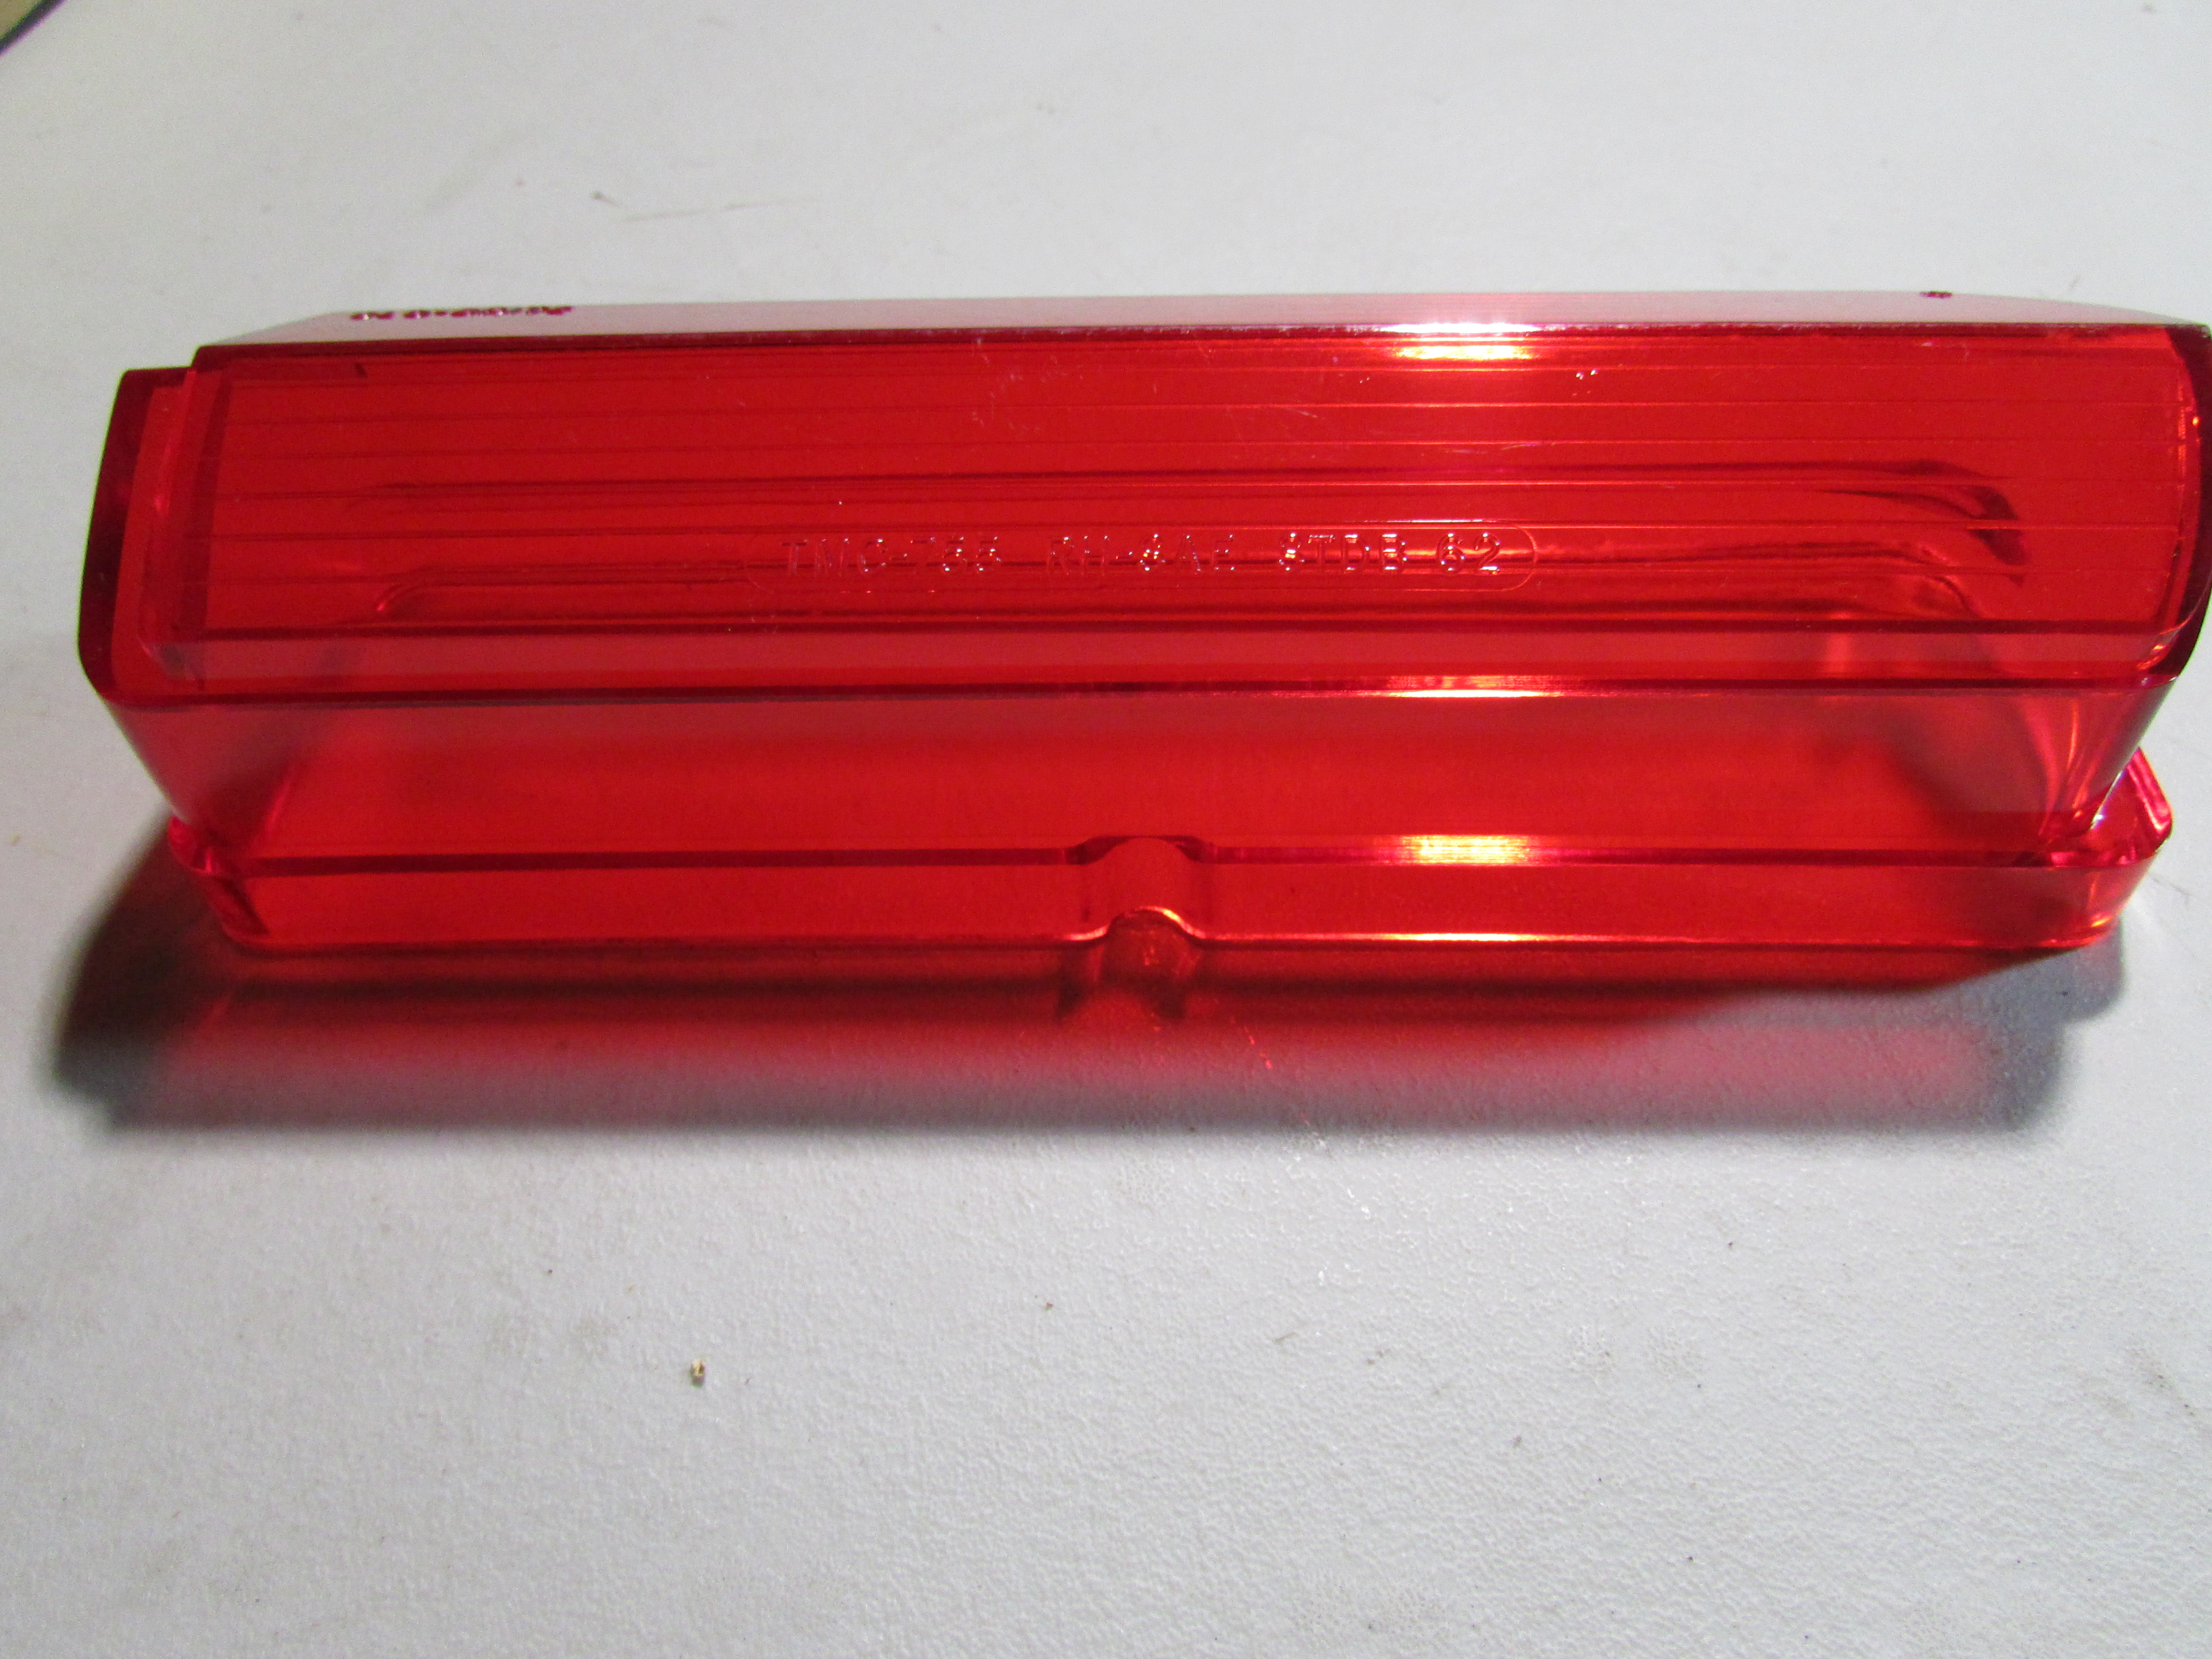 1962 Buick LeSabre, Invicta stop & tail light lens